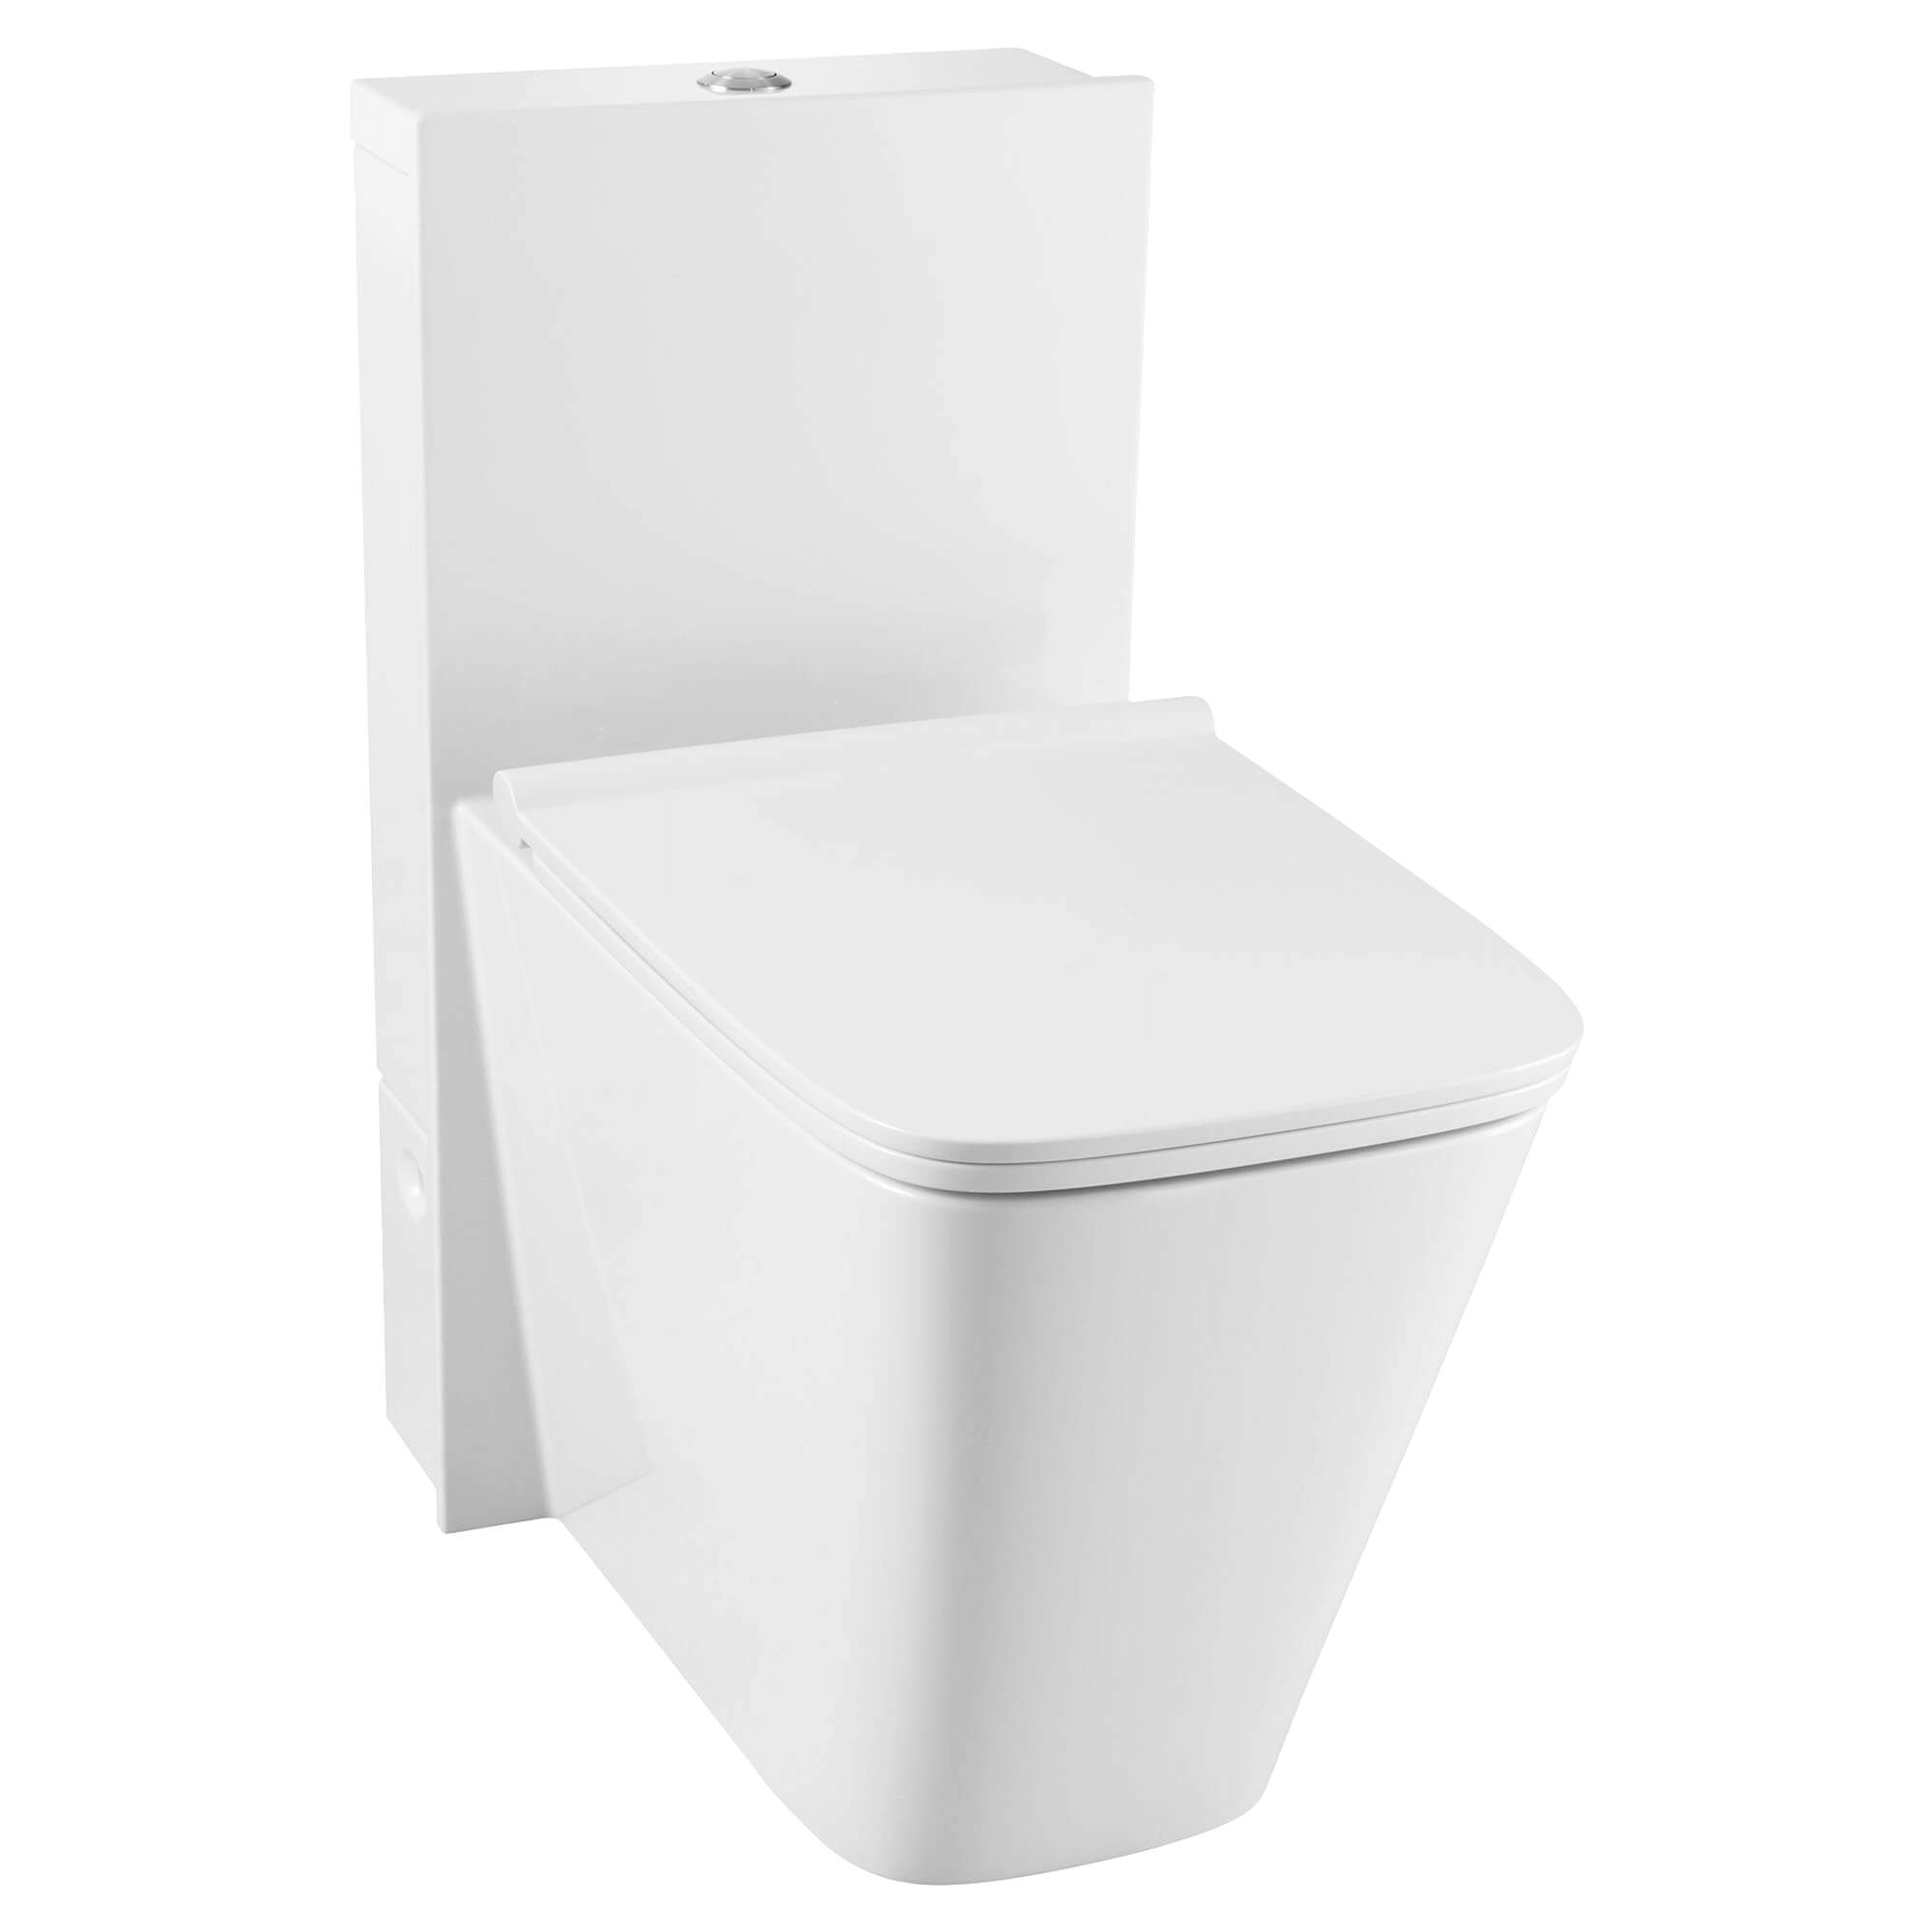 DXV Modulus Monolith Elongated One-Piece Toilet